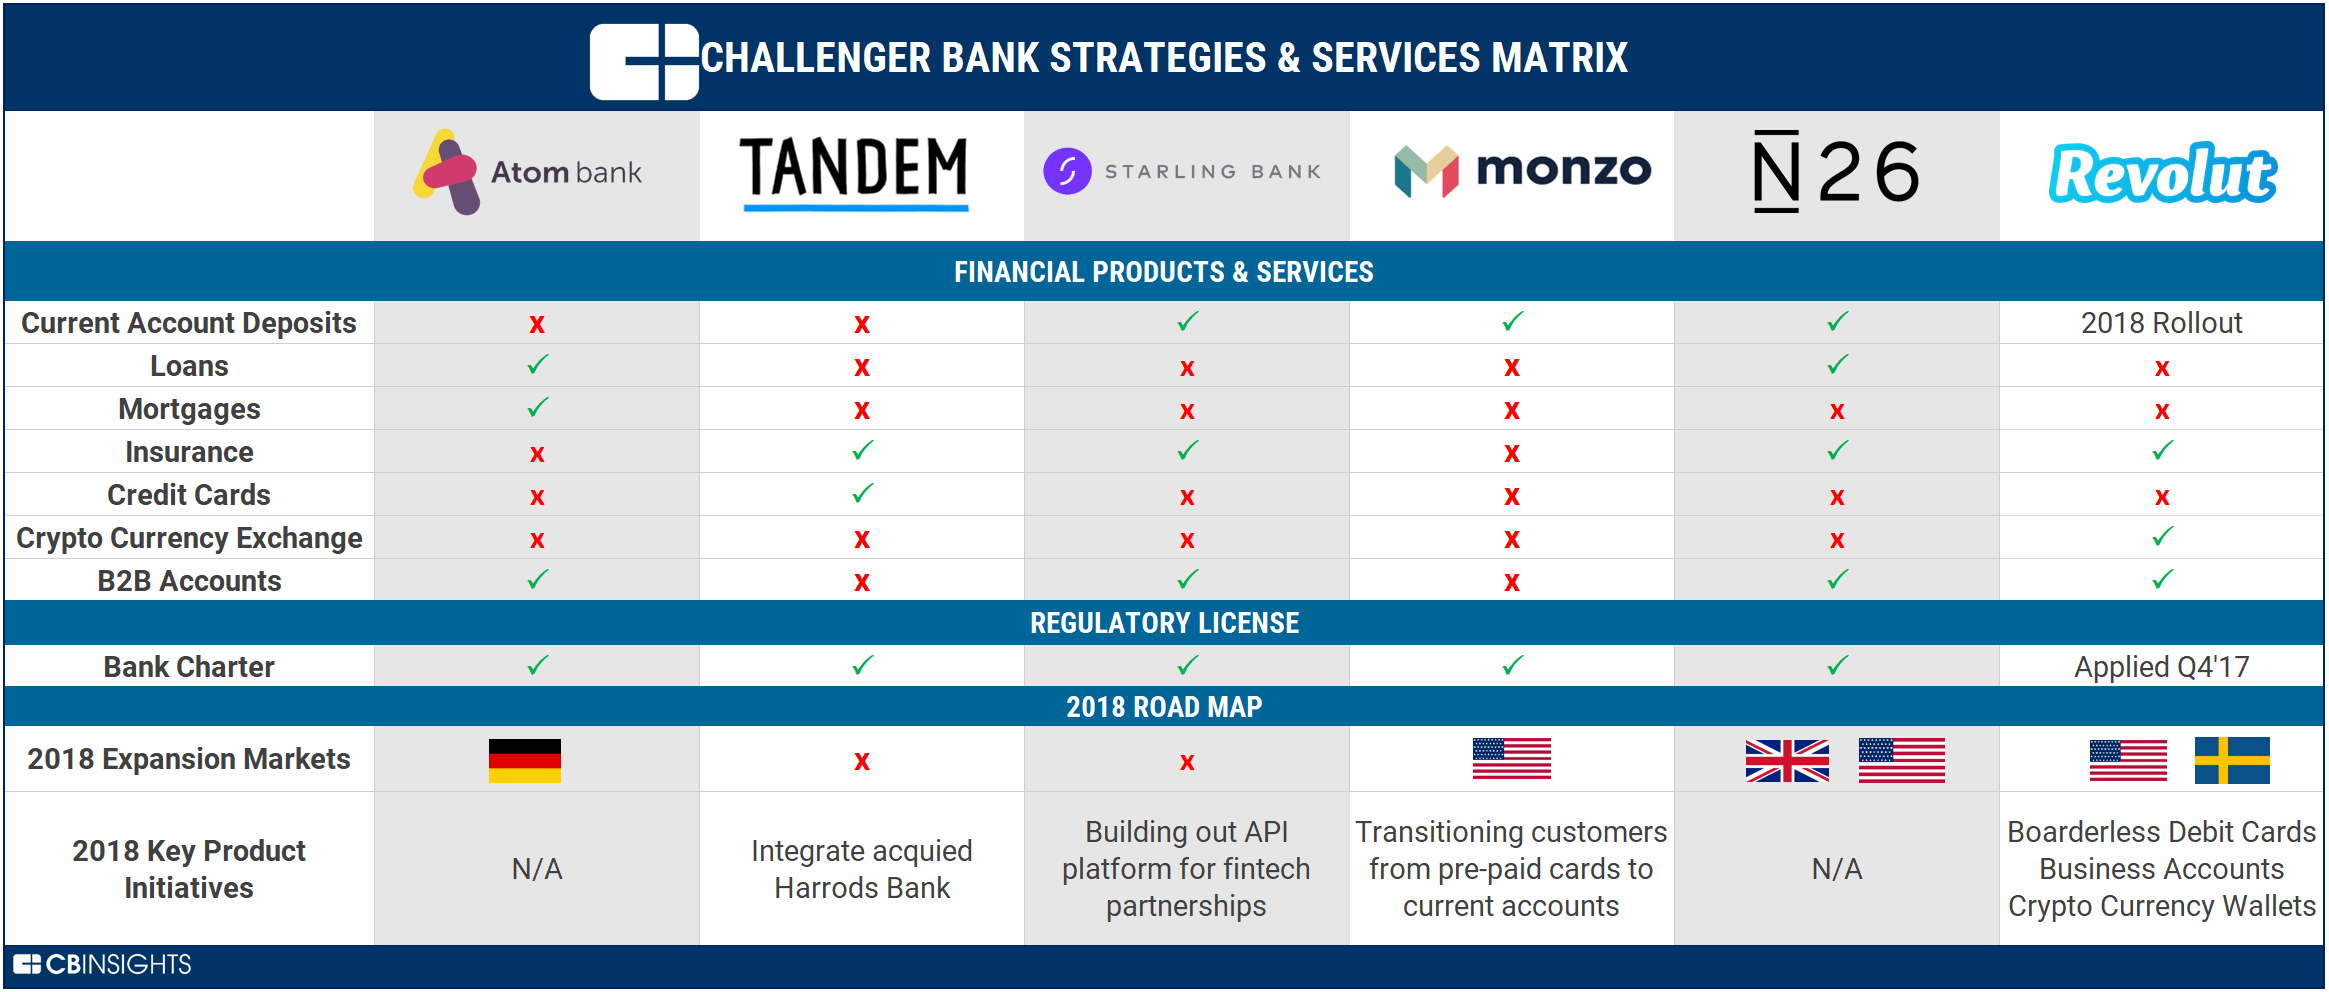 The challenger bank playbook how six challenger bank startups are the fastest growing challenger banks revolut monzo and n26 have acquired 25m customers through viral growth strategies and without a bank charter colourmoves